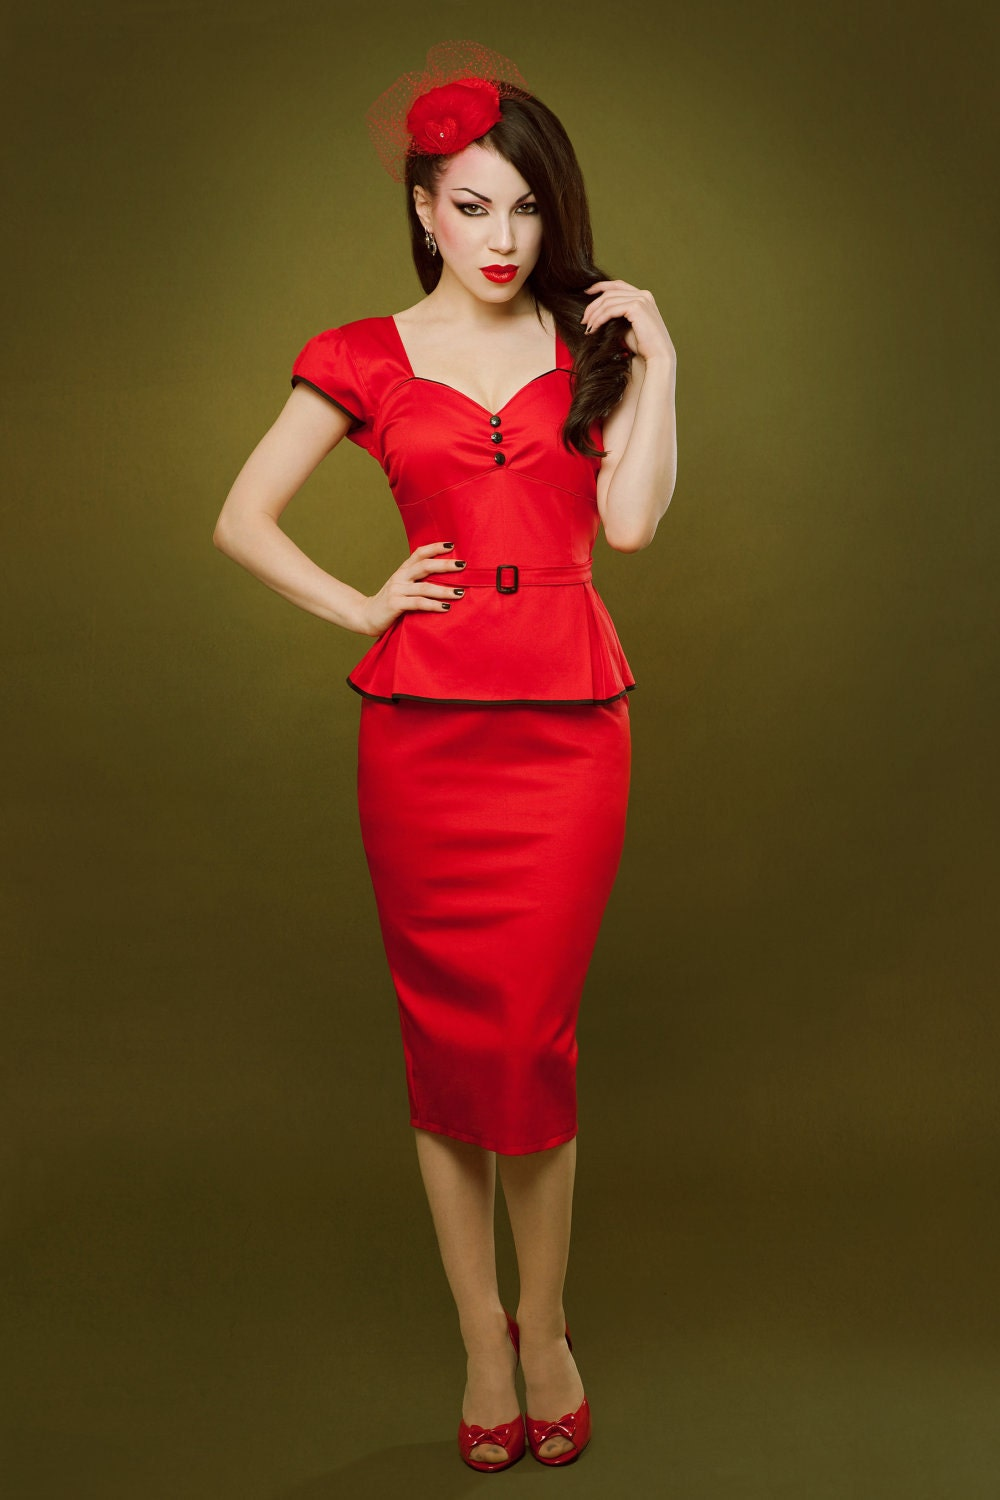 Pin By Berserk Vikings On Makeup Ideas: Pin Up Rockabilly Red Peplum Dress By Hola Chica Clothing